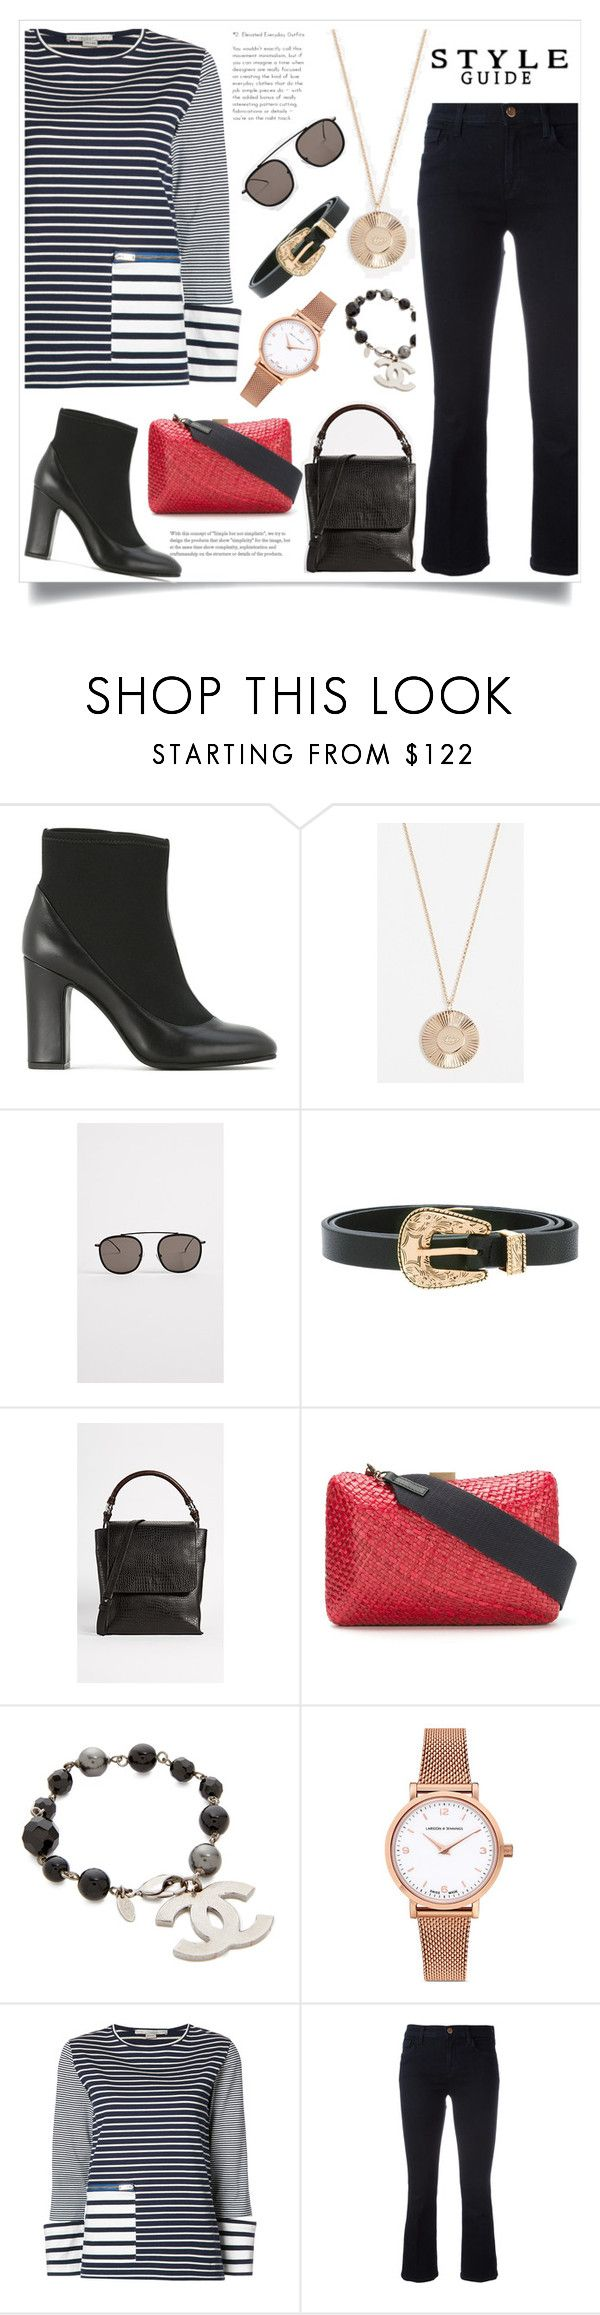 """set for amazing"" by monica022 ❤ liked on Polyvore featuring Sarah Chofakian, Jennifer Zeuner, Illesteva, B-Low the Belt, Rachel Comey, Serpui, Chanel, Larsson & Jennings, STELLA McCARTNEY and J Brand"